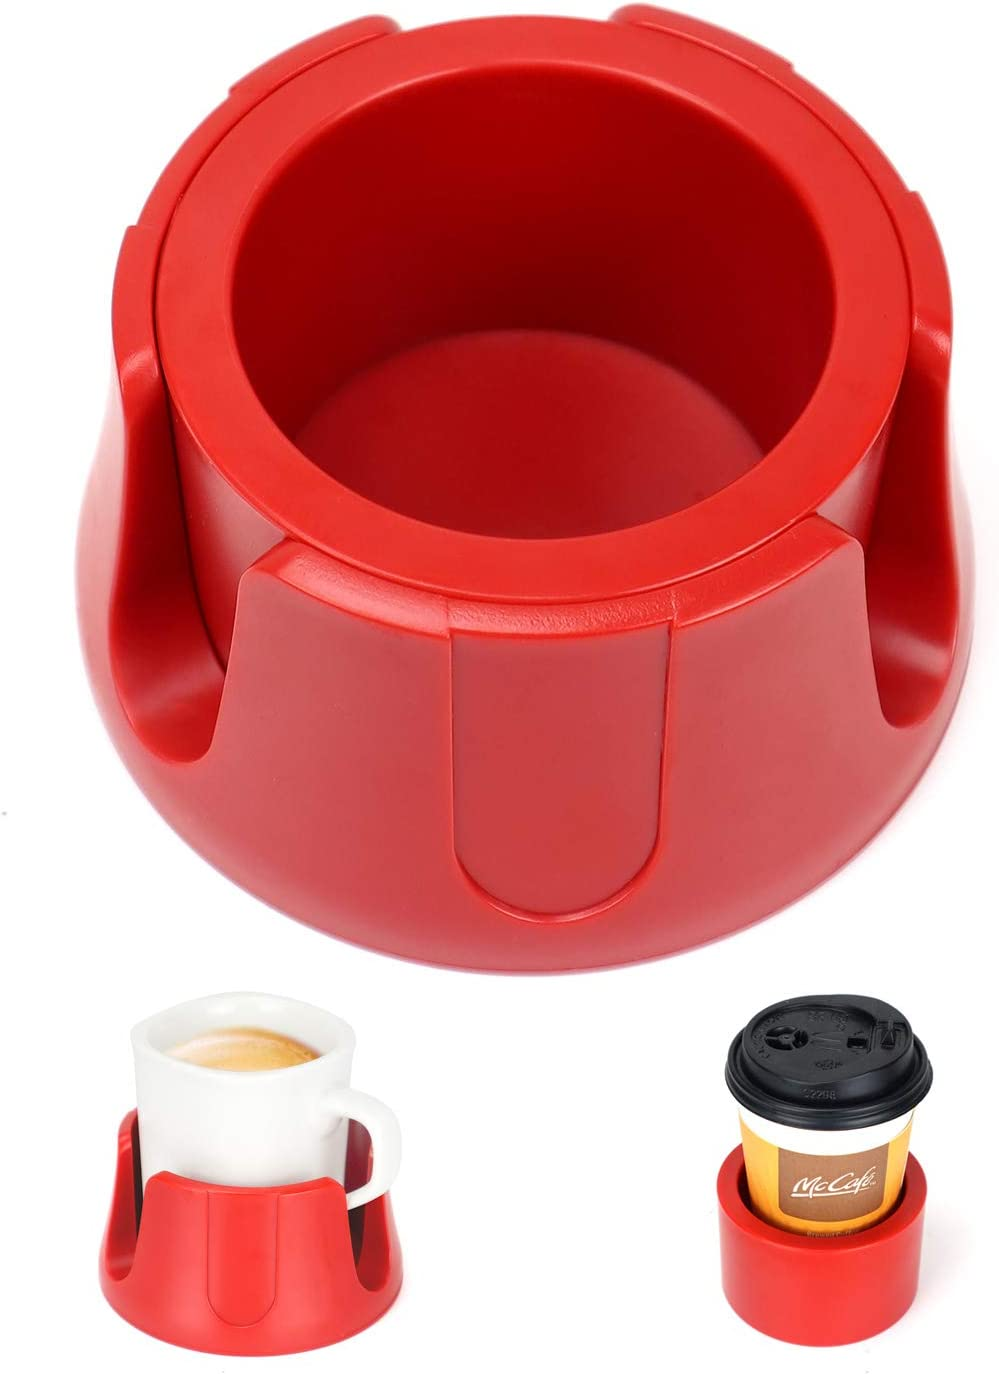 Anti-Spill Import Cup Holder Drink Coaster with Drin Mat Anti-Slip Fits Max 55% OFF